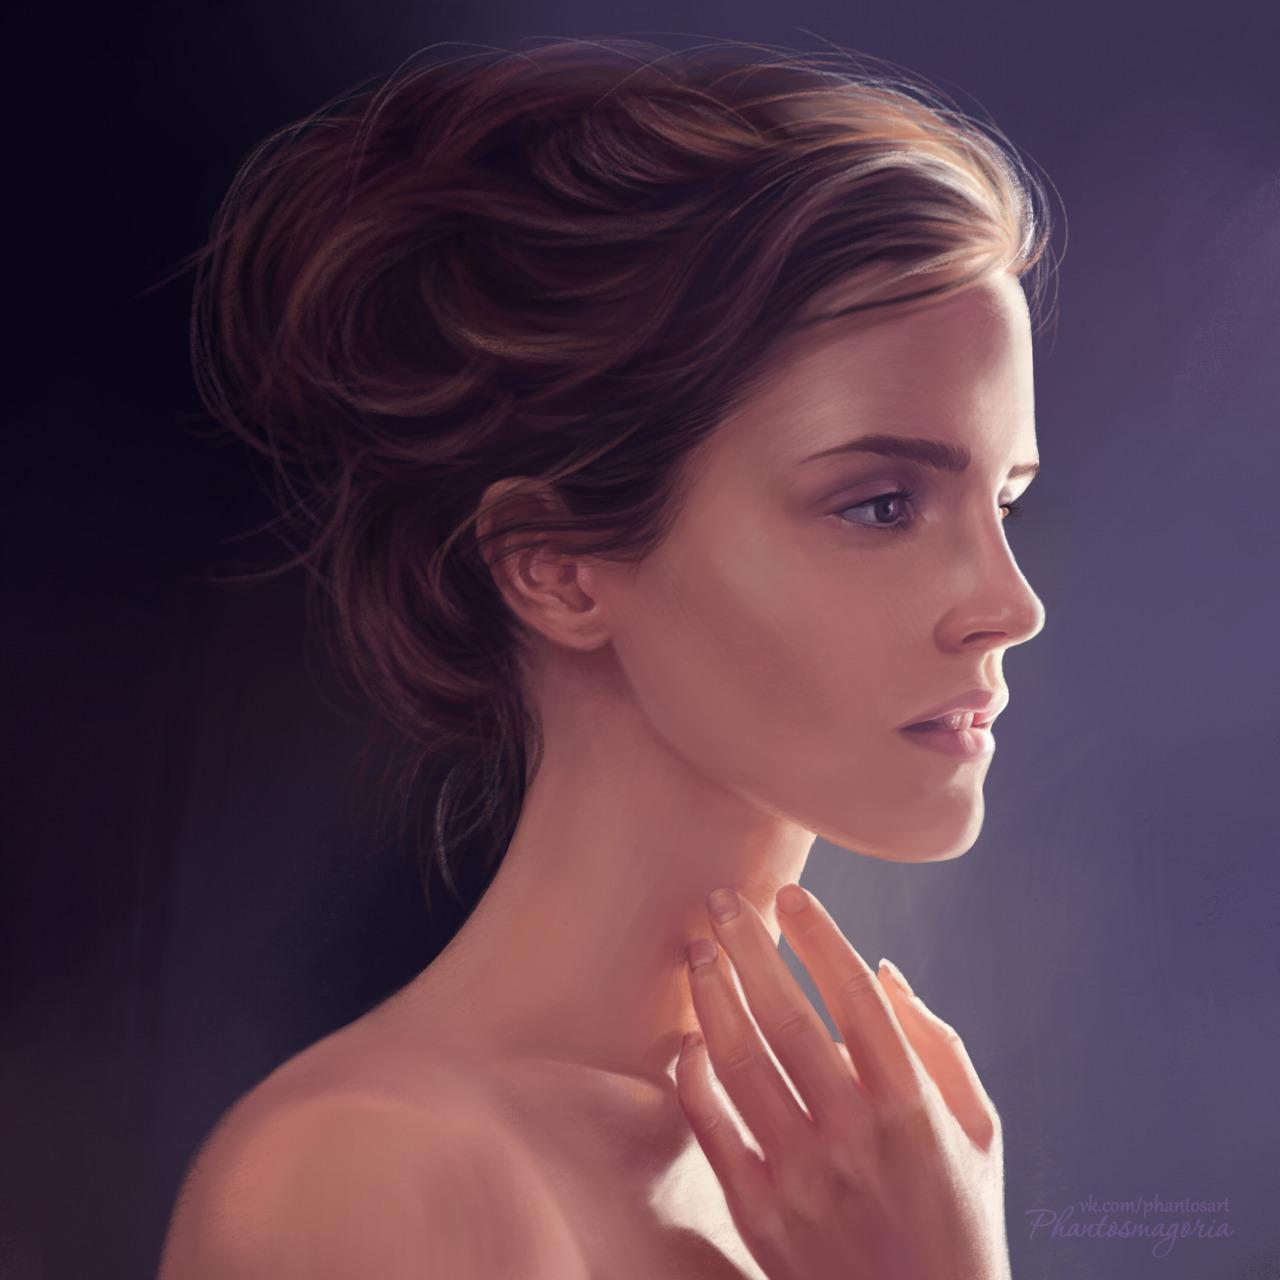 actress, amazing, art, beautiful, digital art, drawing, emma watson, painting, photography, tumblr, not my art